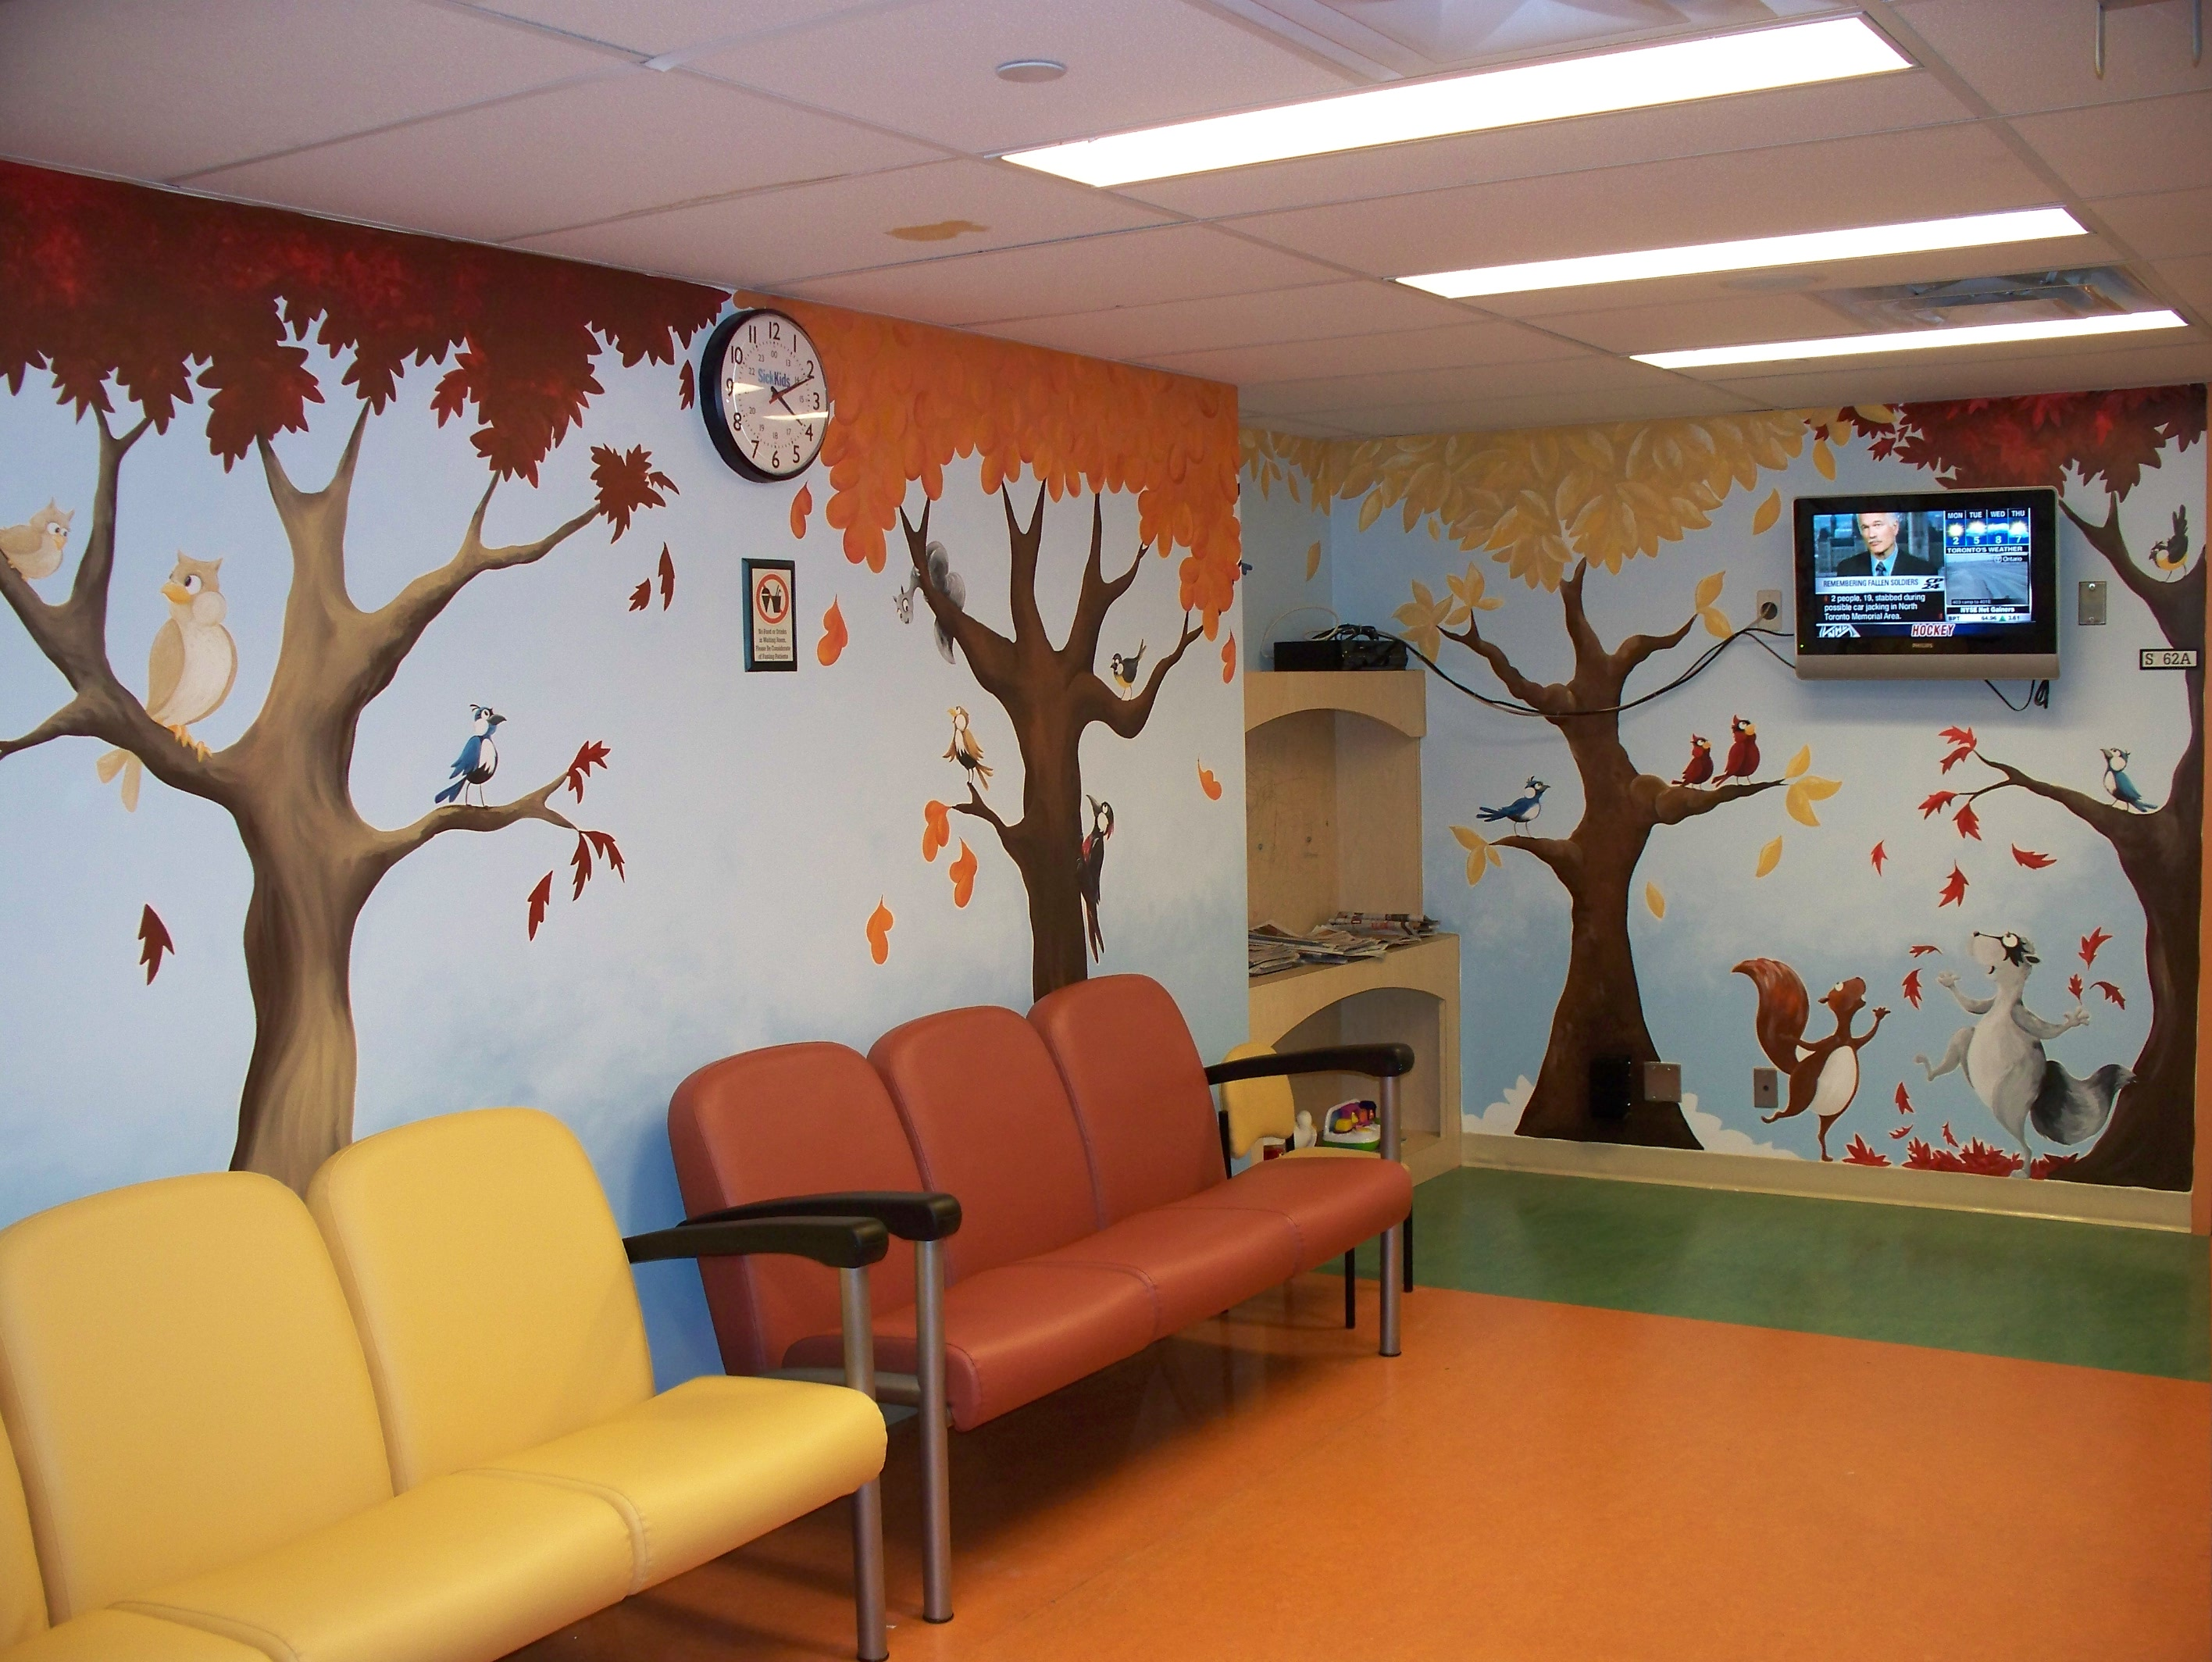 Sick kids mri waiting room susy bee for Kids waiting room furniture